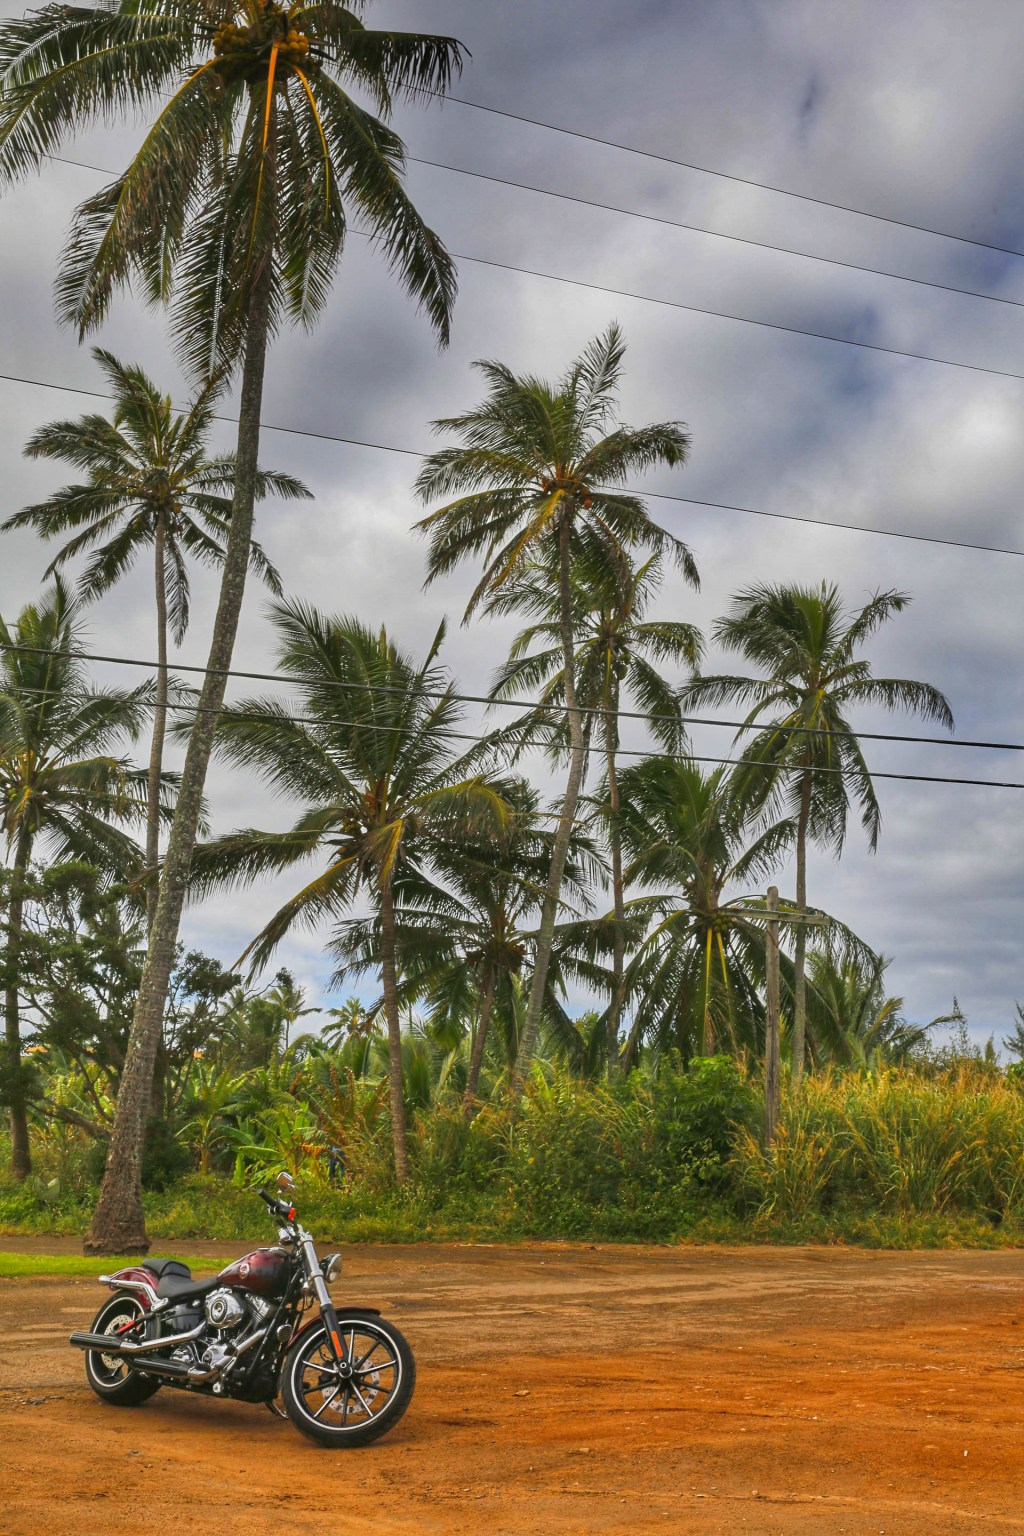 Motorcycle-in-Hawaii-North-Shore-Oahu